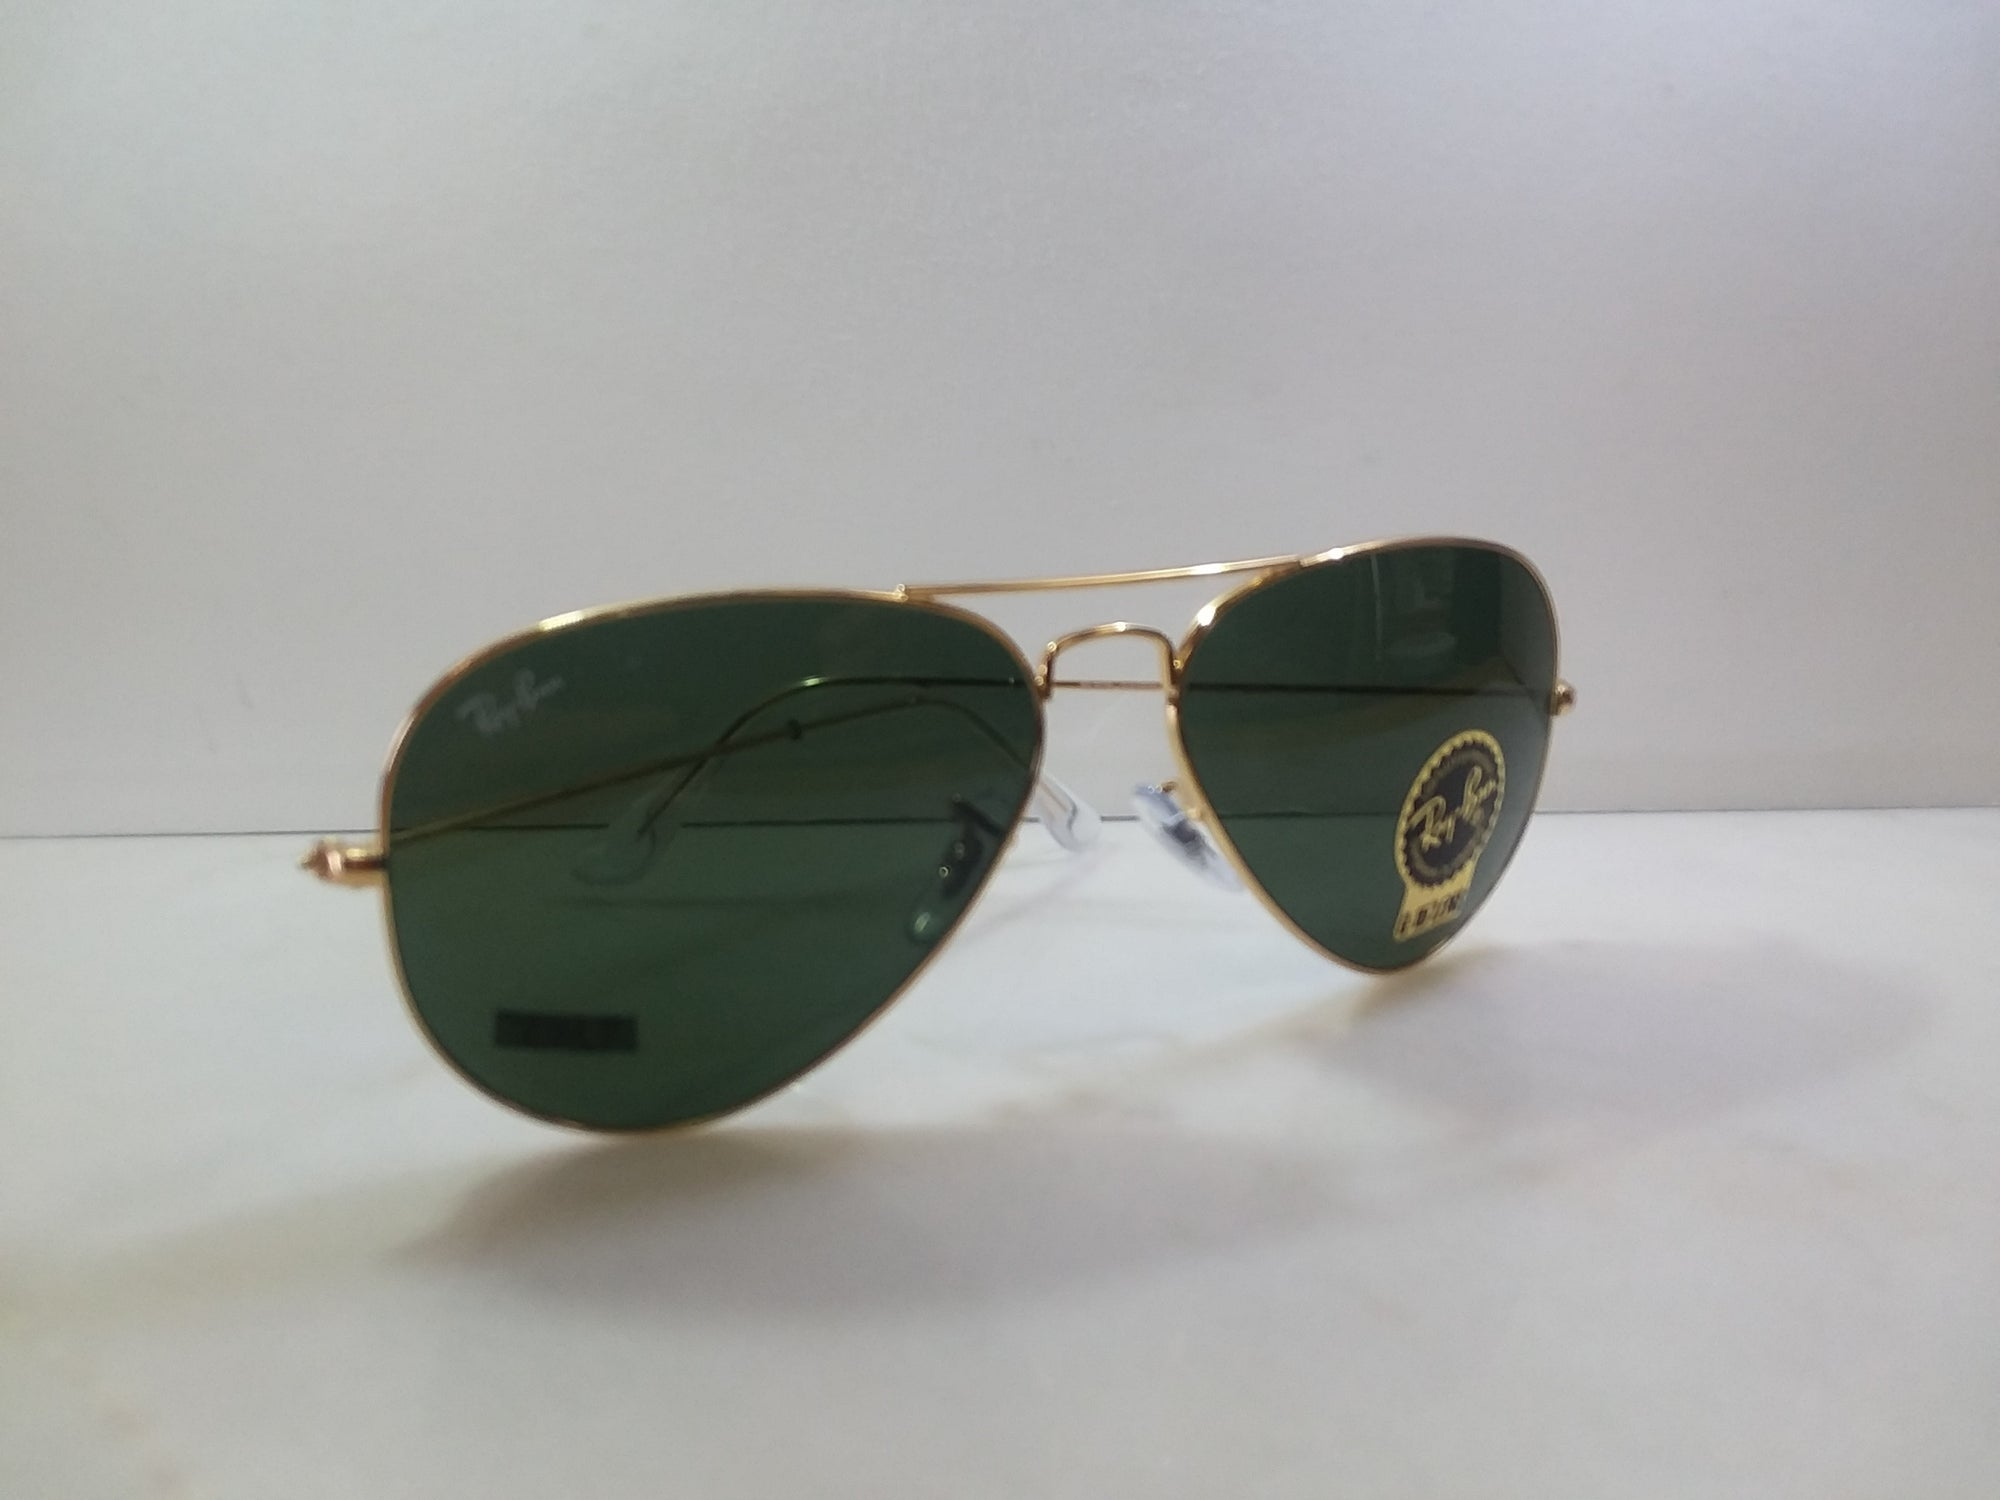 Ray Ban / Color / Gloss Black / Syle / Polarized Aviator Eye Size 62